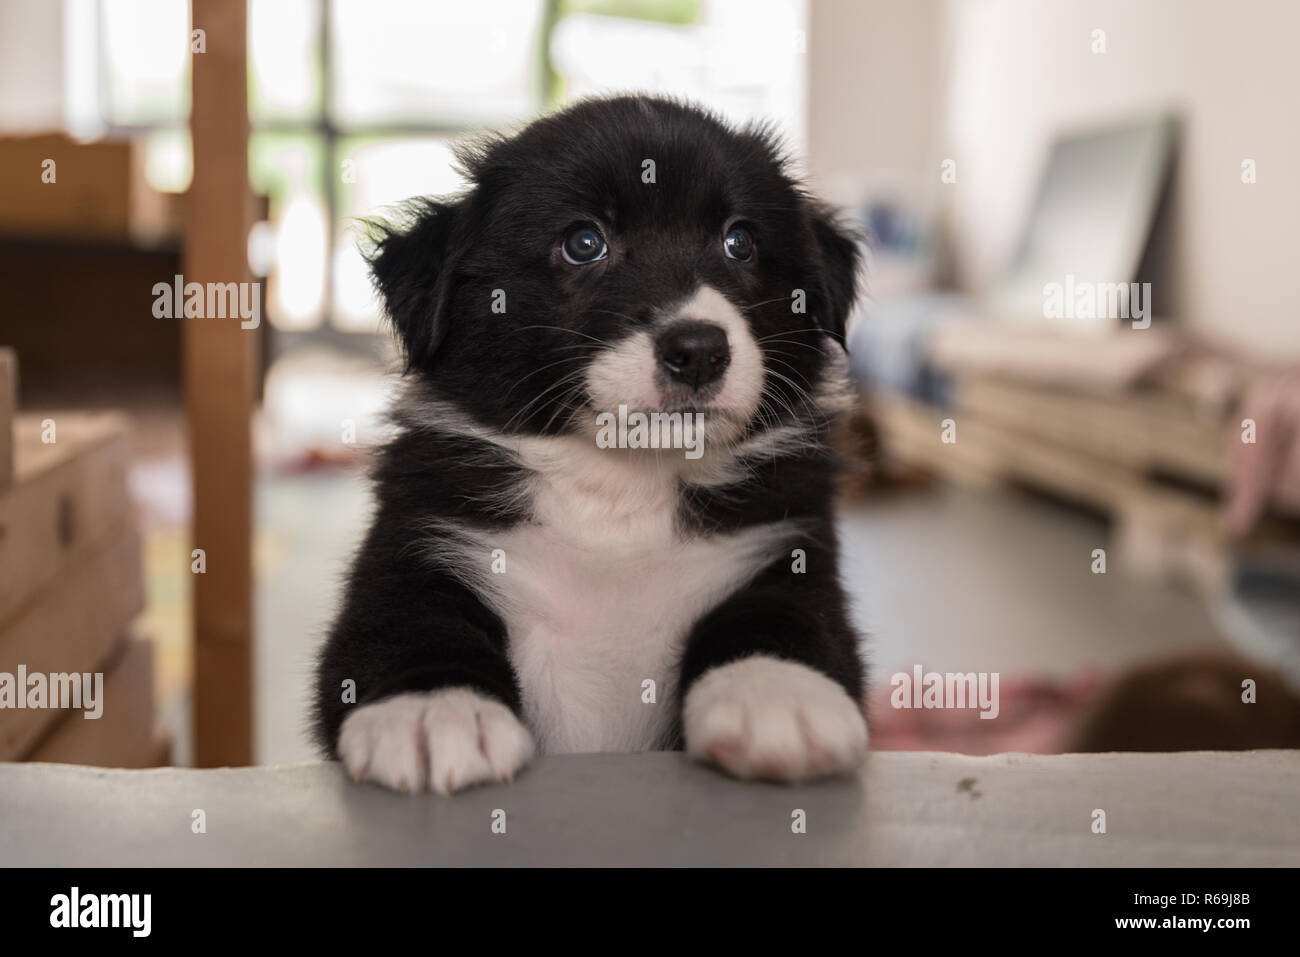 Curiously An Australian Shepherd Looks Beyond His Place Stock Photo